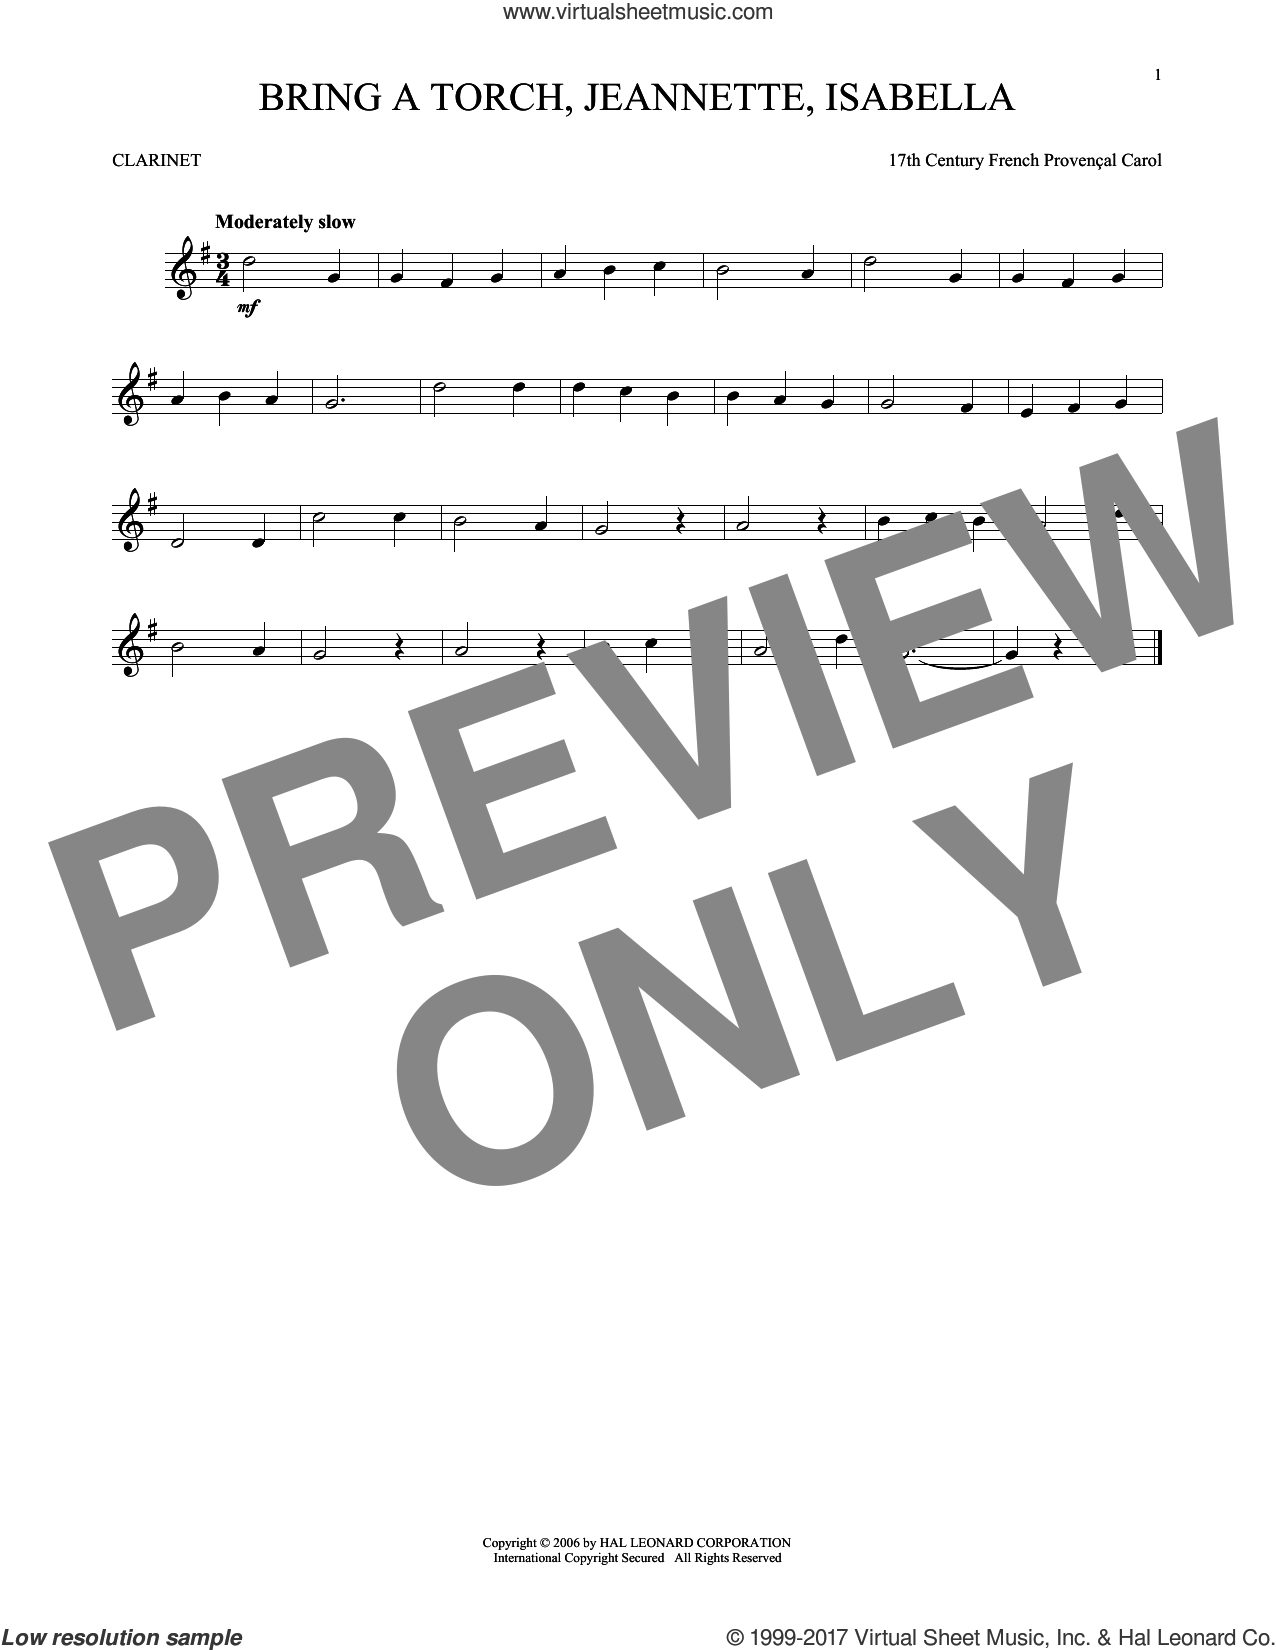 Bring A Torch, Jeannette, Isabella sheet music for clarinet solo by Anonymous and Miscellaneous, intermediate skill level